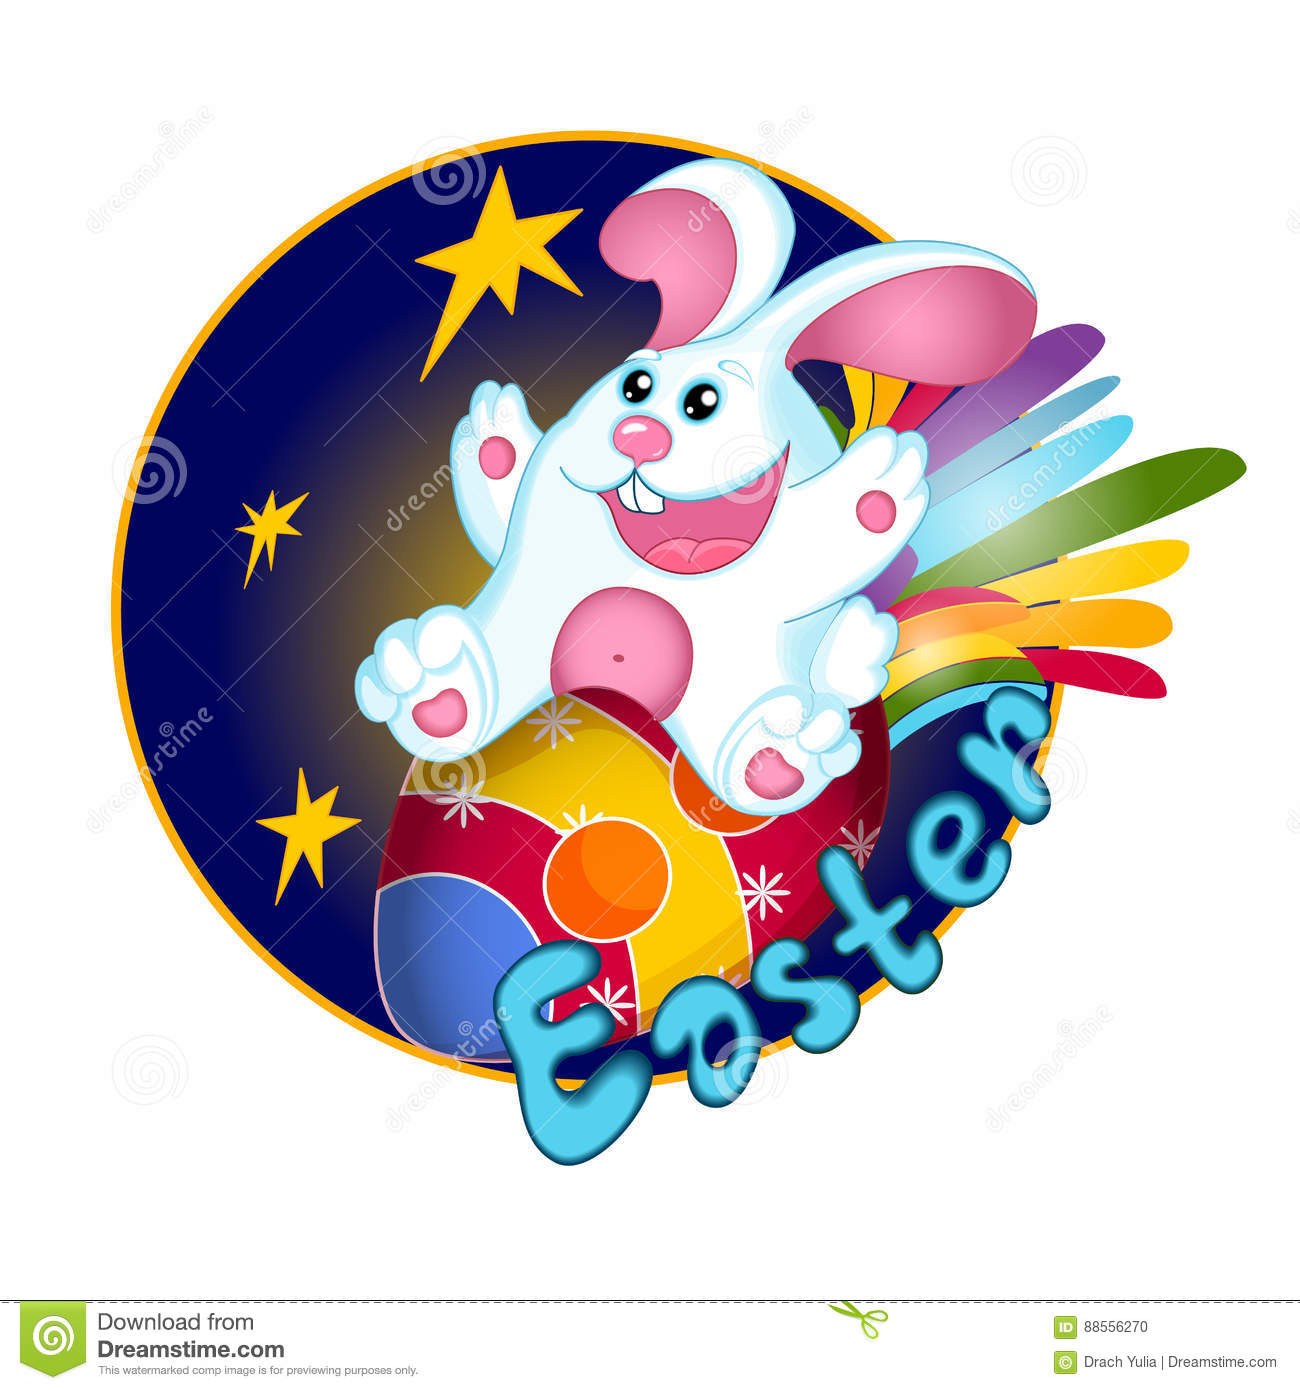 A White Easter Bunny Rabbit Flies On An Easter Egg Decorated Like A